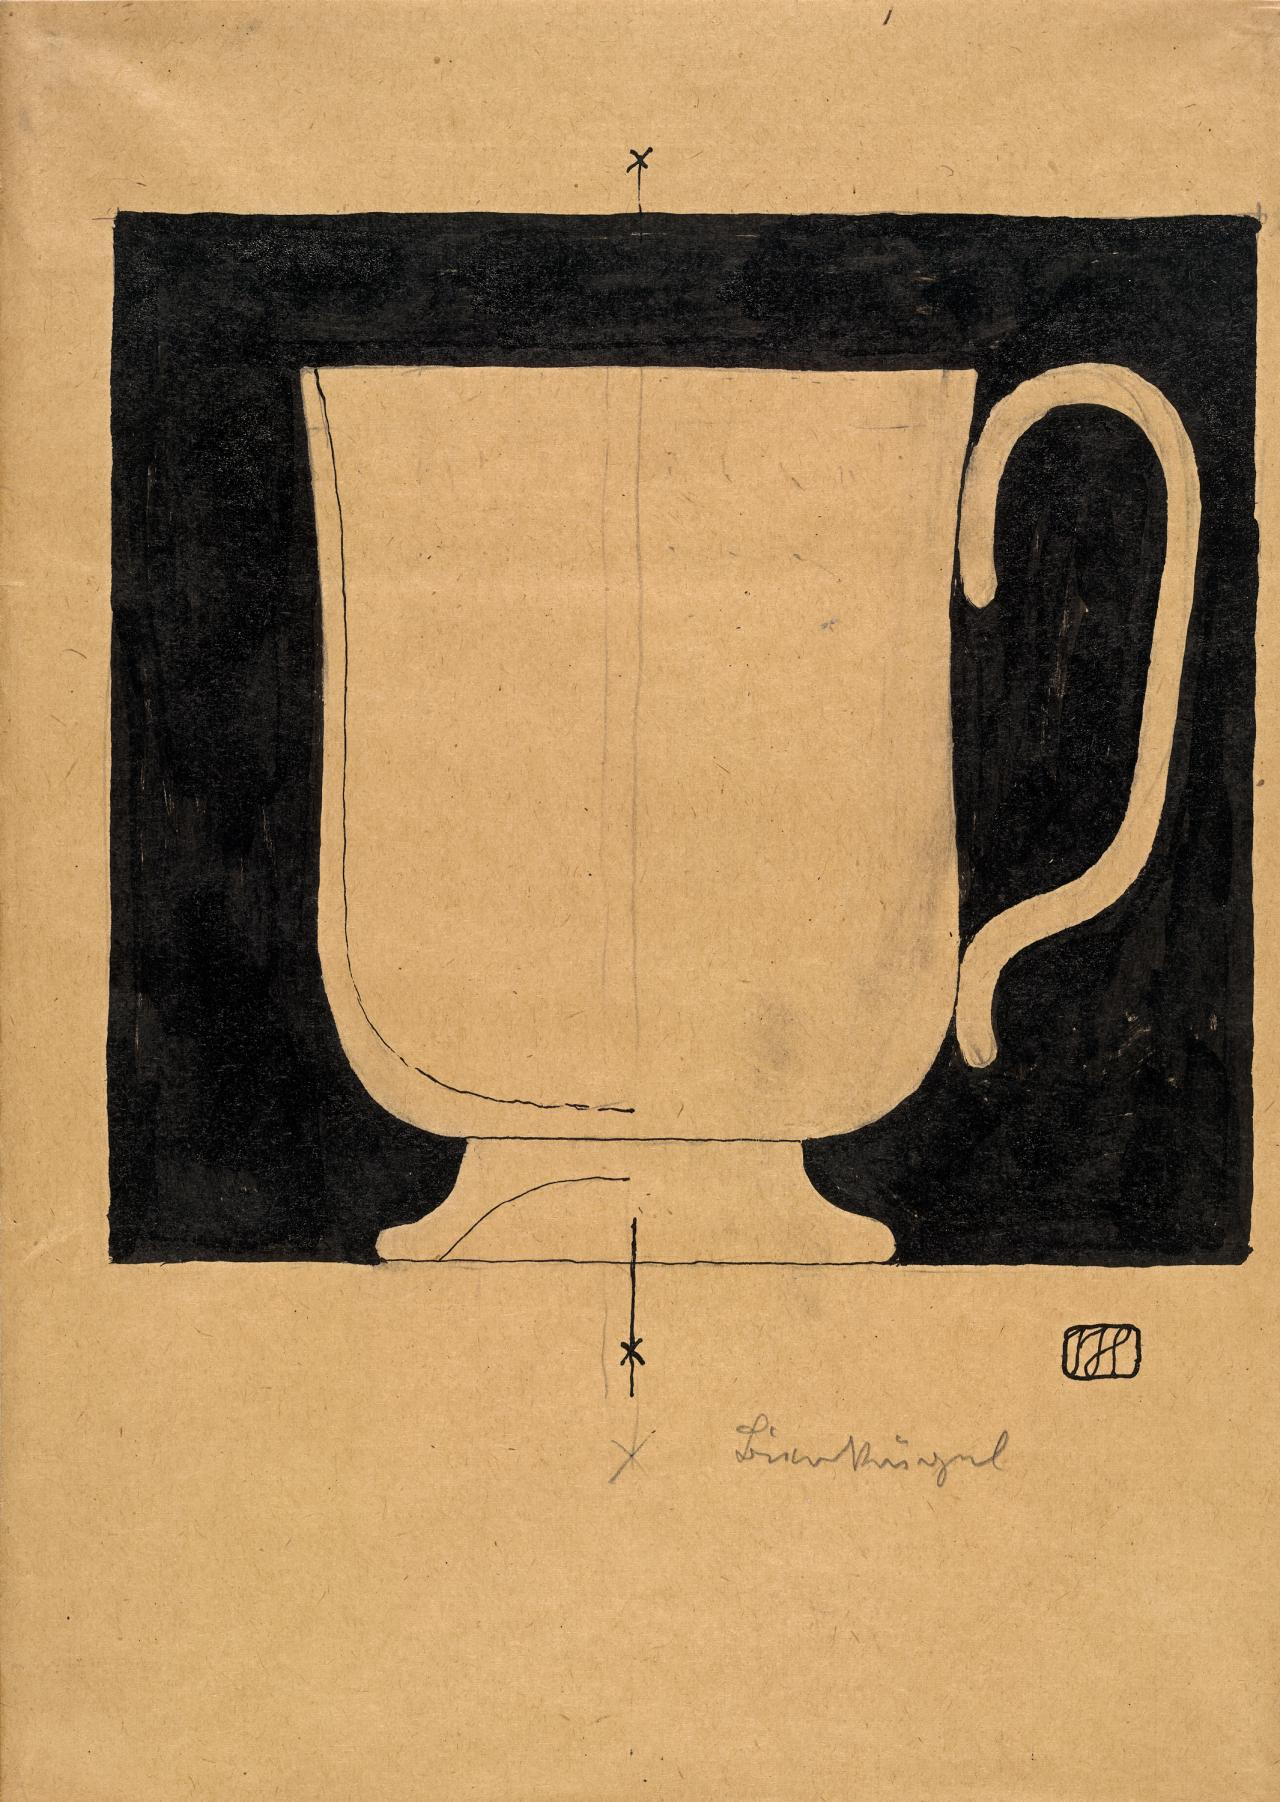 Design for cup